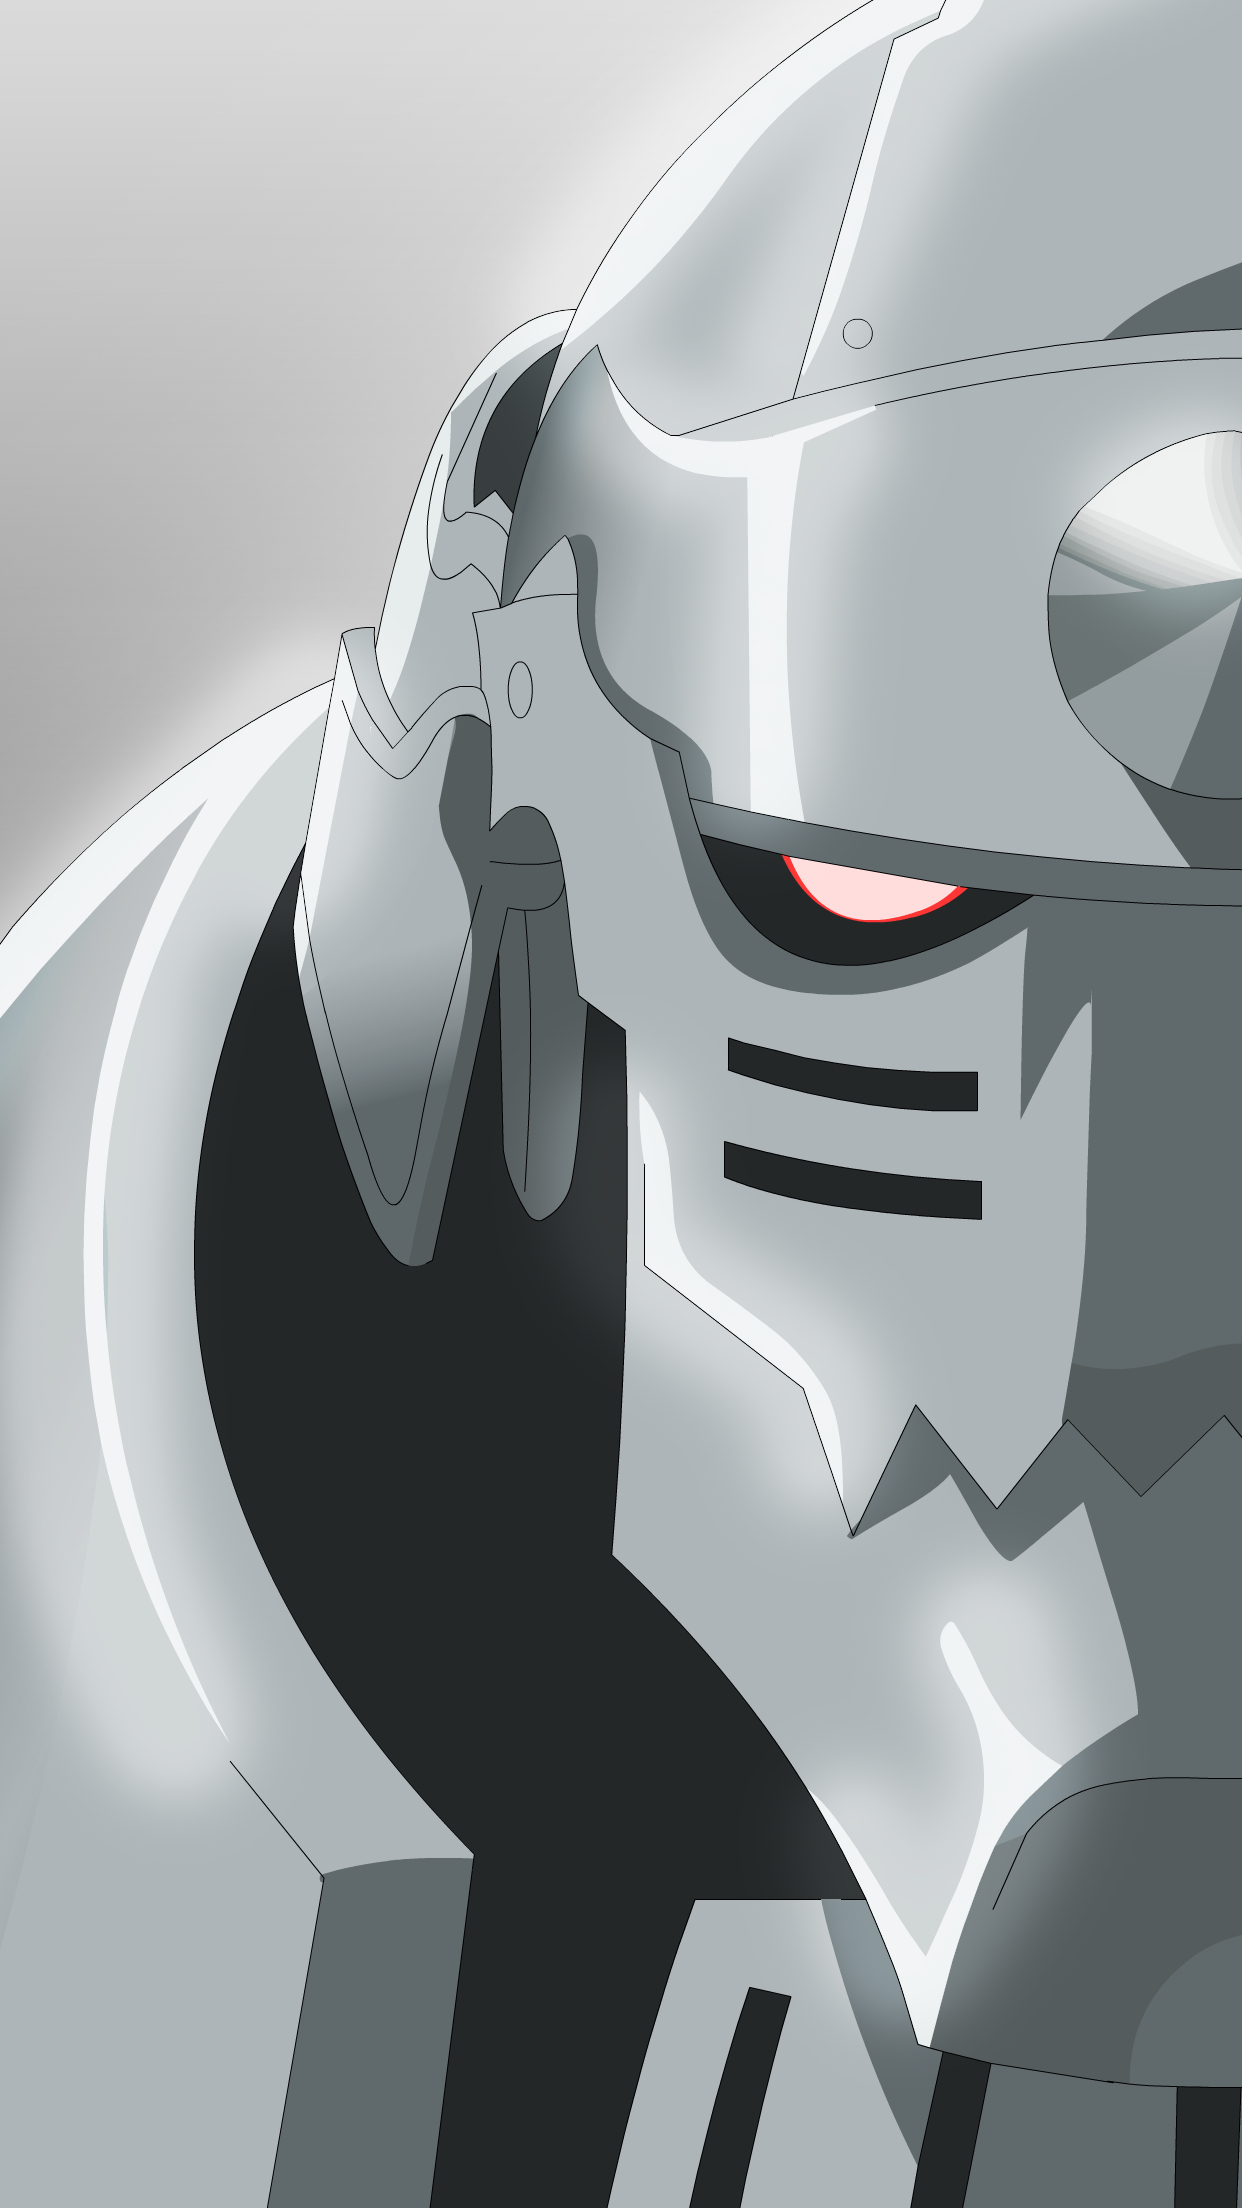 Full Metal Alchemist Alphonse Wallpaper for iPhone X, 8, 7, 6 - Free Download on 3Wallpapers